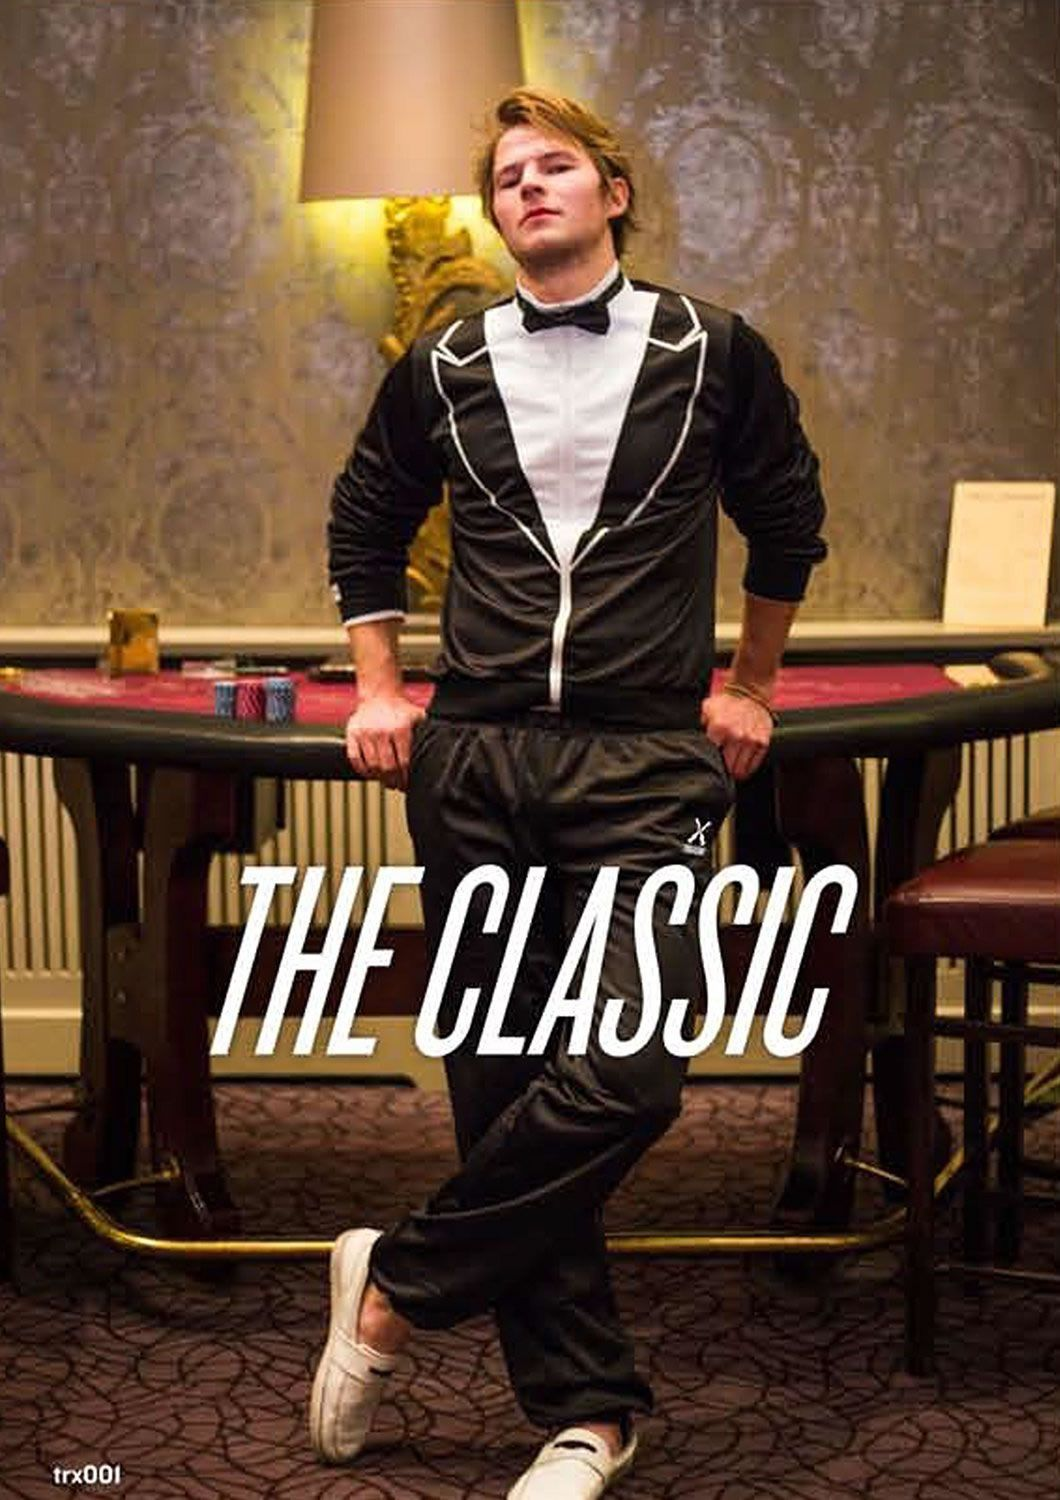 Traxedo Tracksuit Tuxedo Gives Stuffy Formal Suits a Much